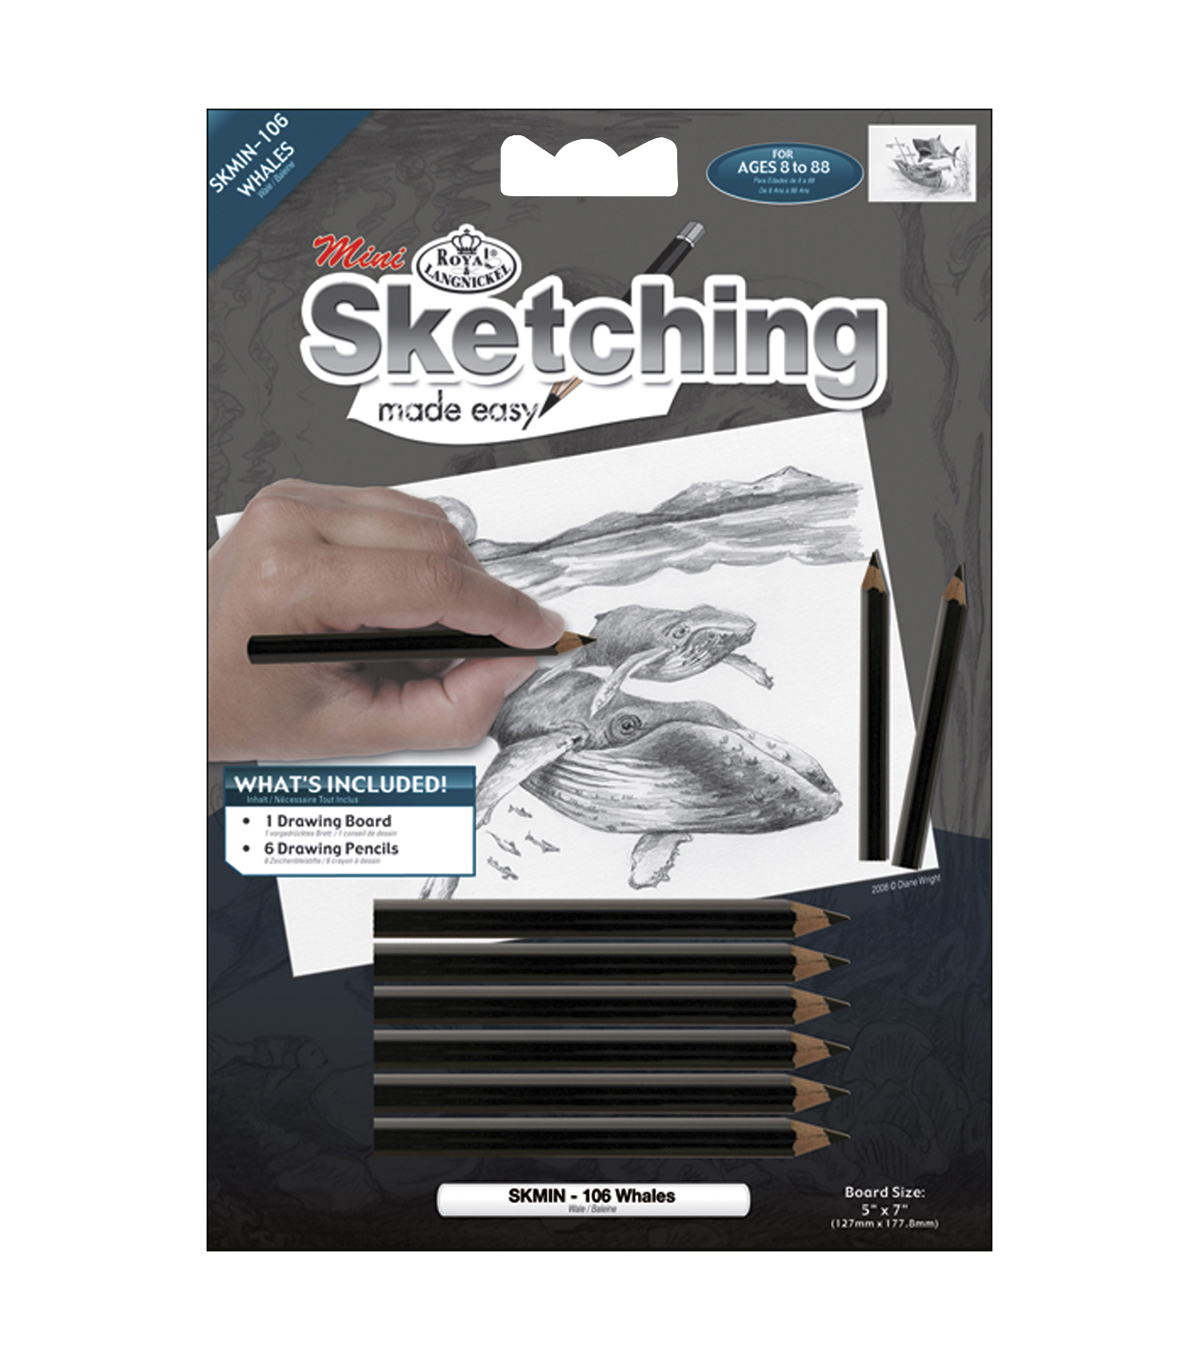 Royal Brush 7\u0022x5\u0022 Sketching Made Easy Kit-Whales